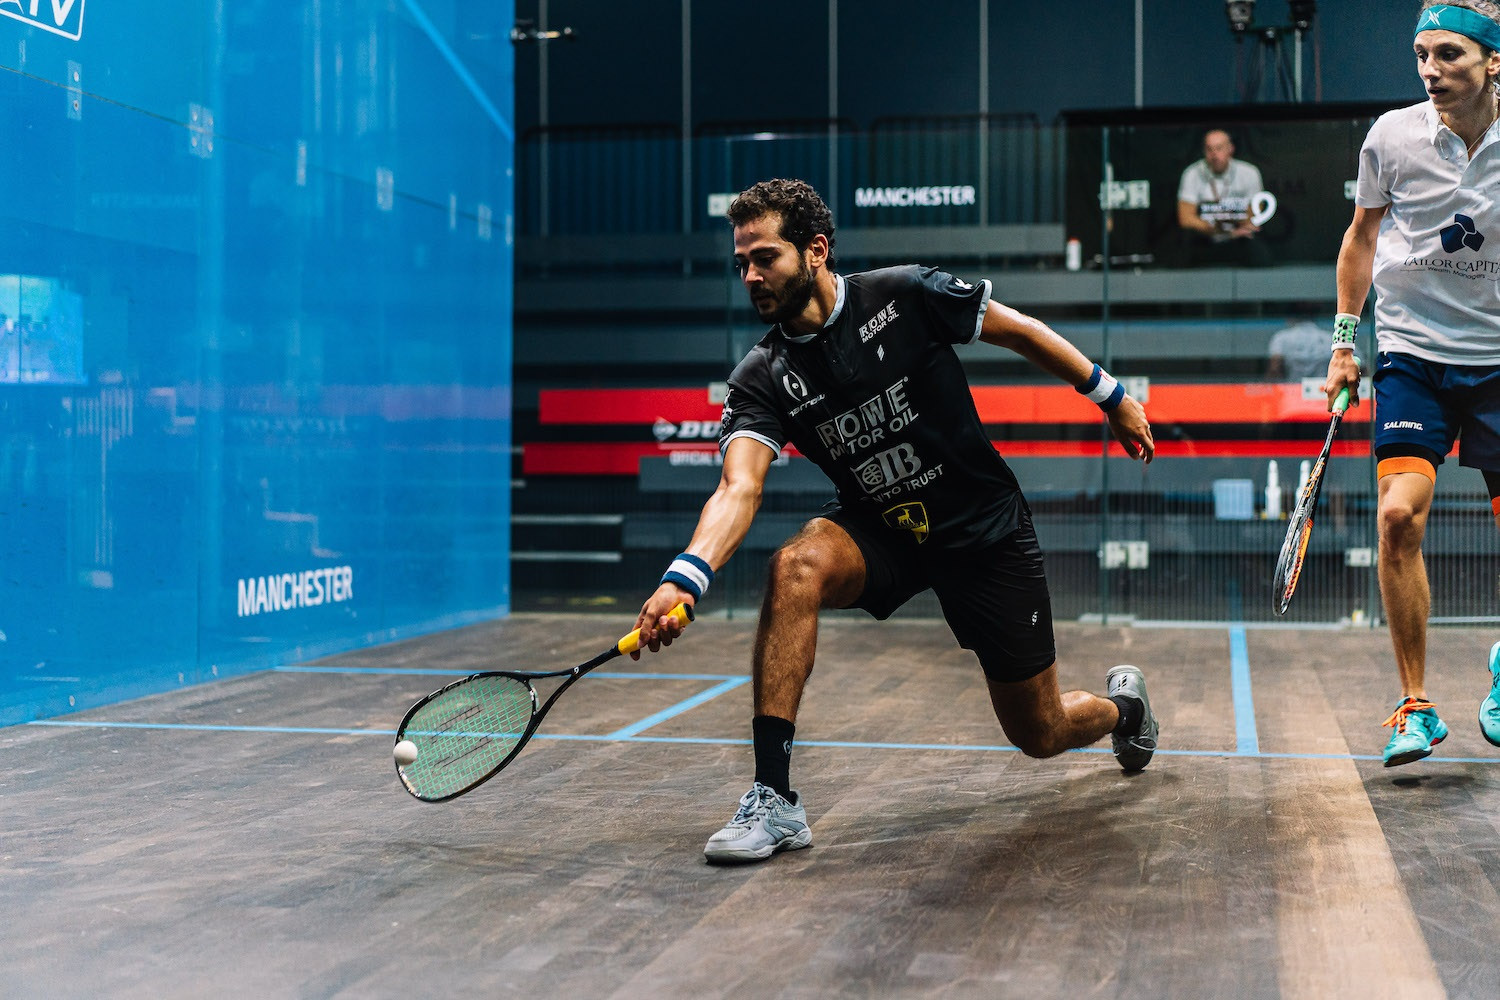 World number three Gawad survives scare in round one of PSA Manchester Open